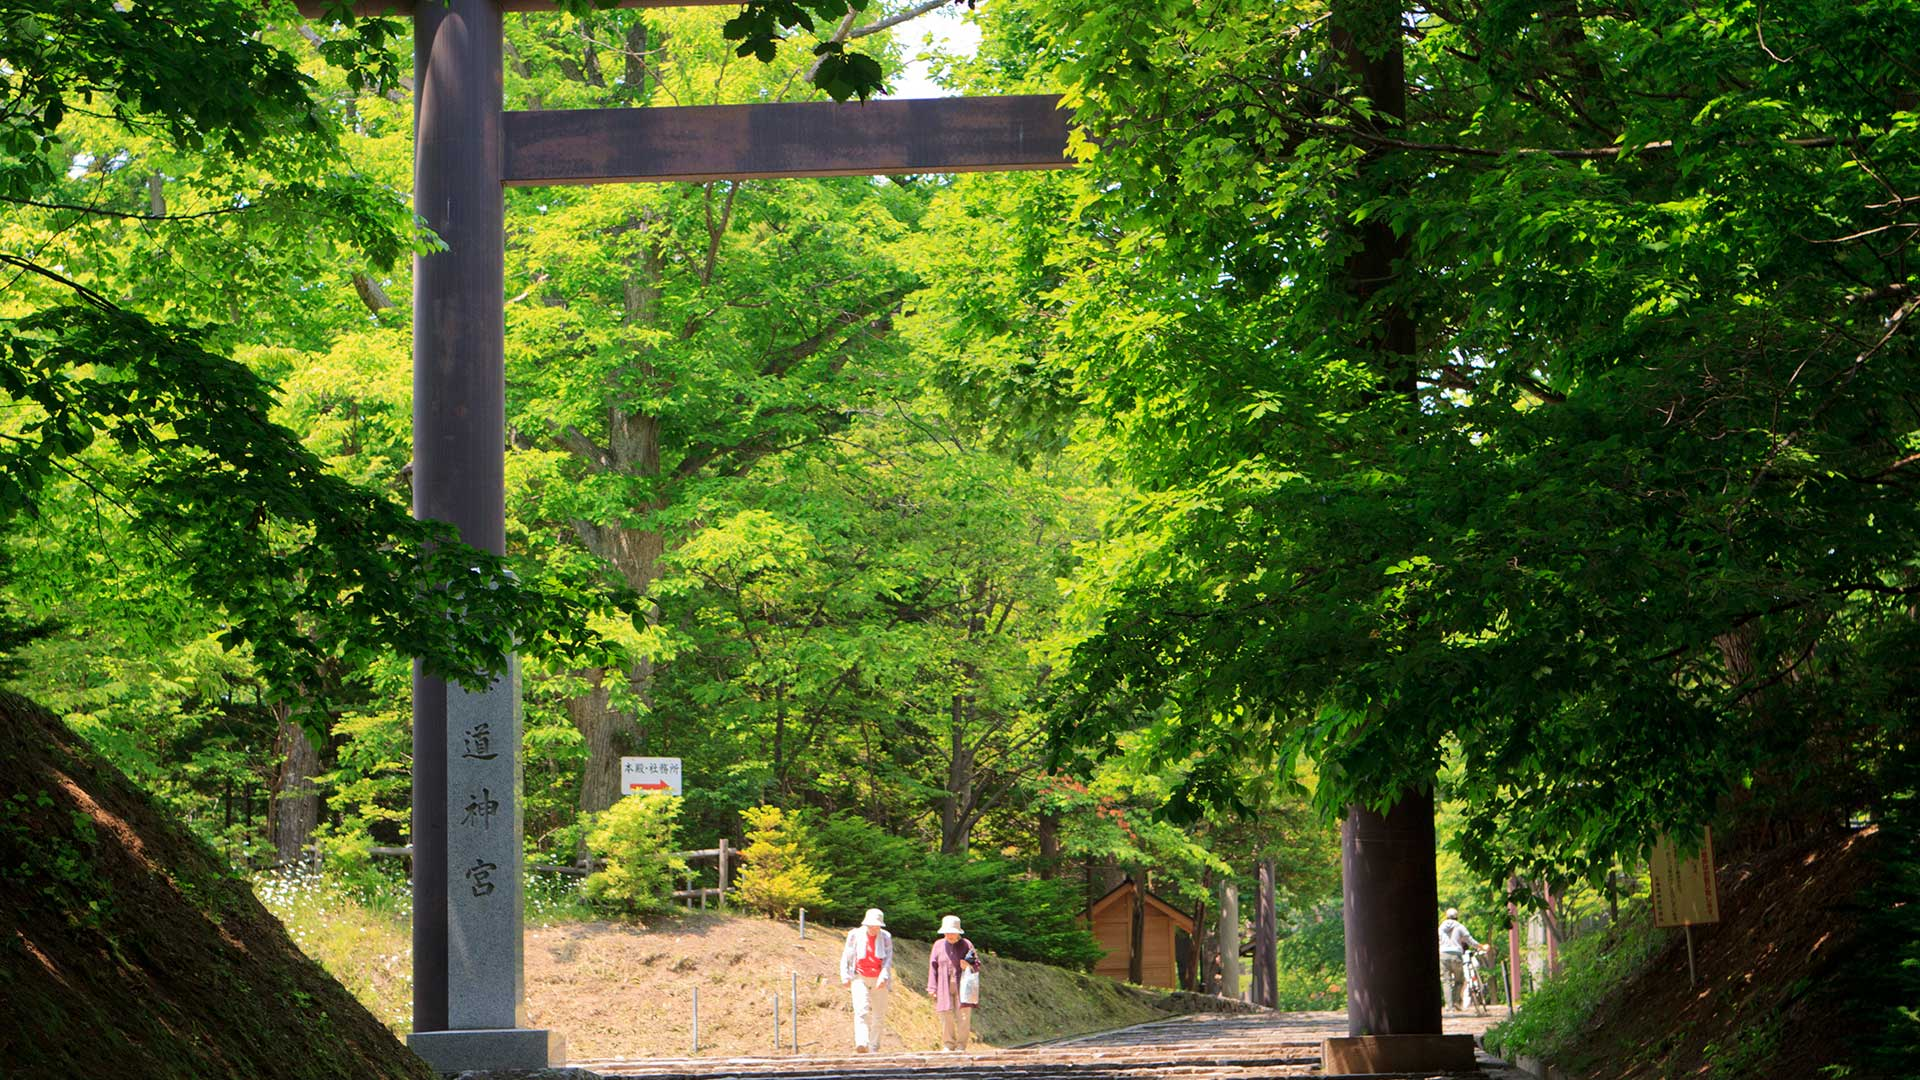 A giant stone tori gate marks the entrance to Hokkaido Jingu in Sapporo, which is Hokkaido island's largest and most important Shinto Shrine.